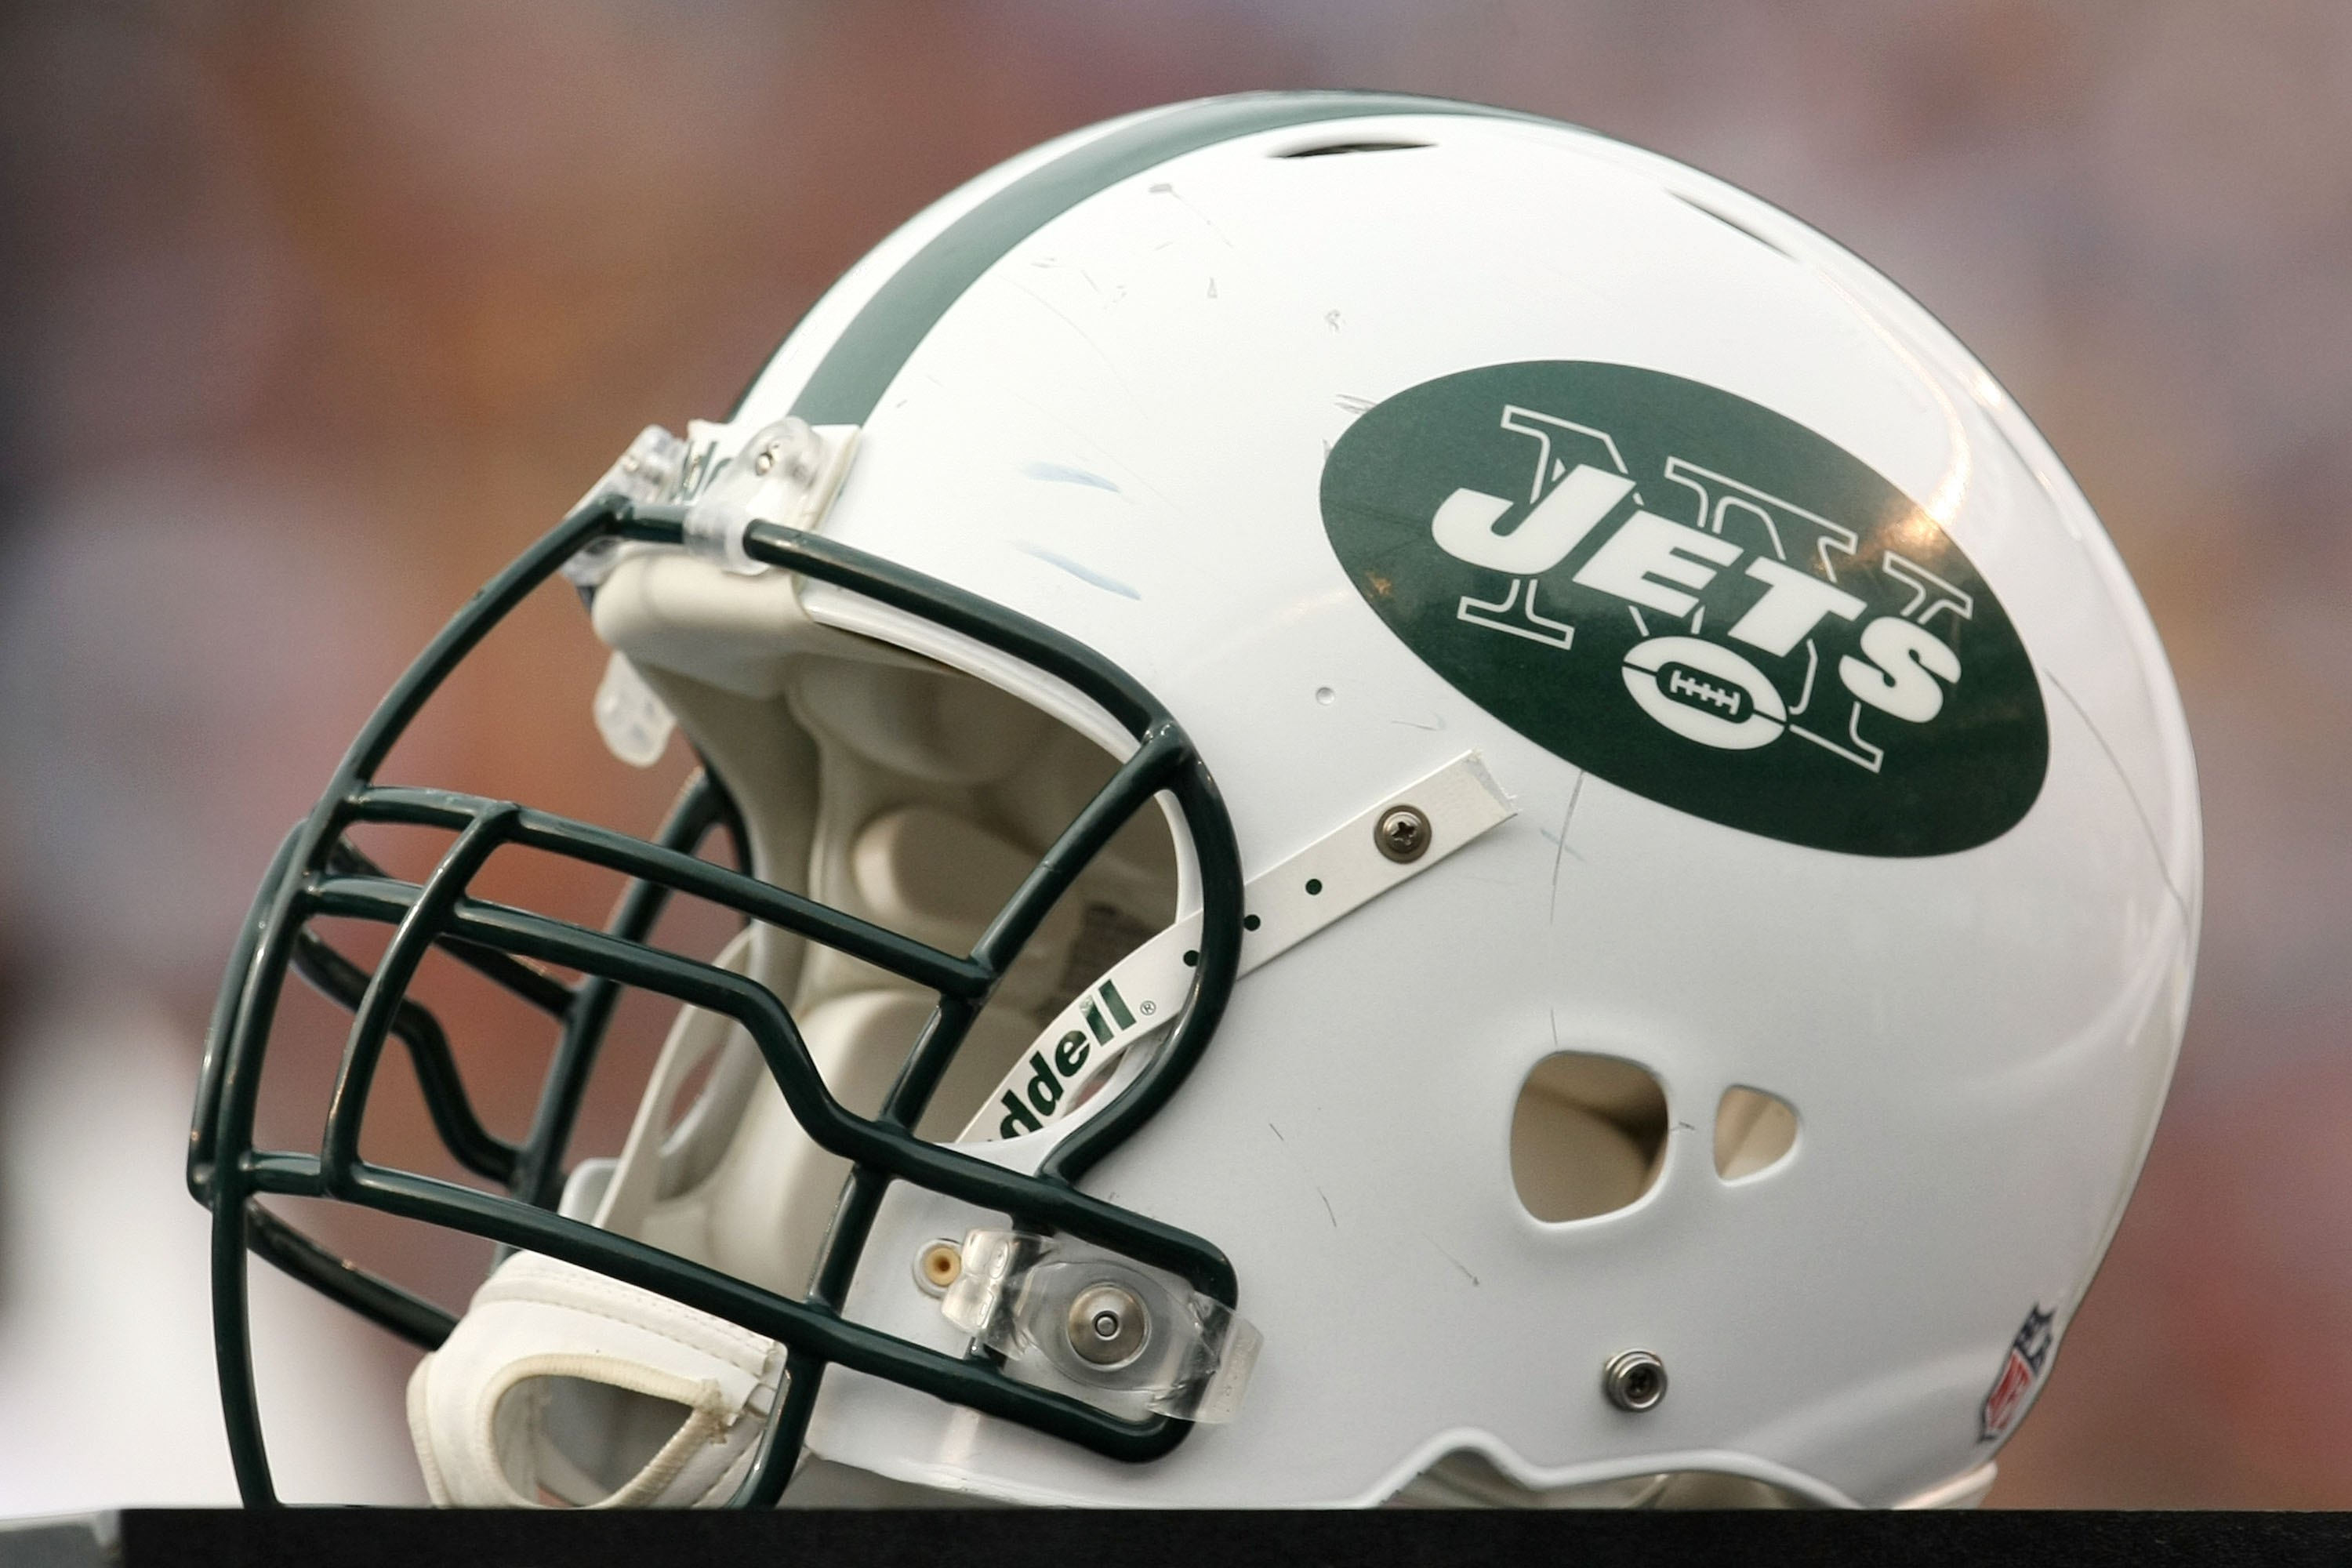 96178183-nfl-divisional-playoffs-new-york-jets-v-san-diego-chargers.jpg